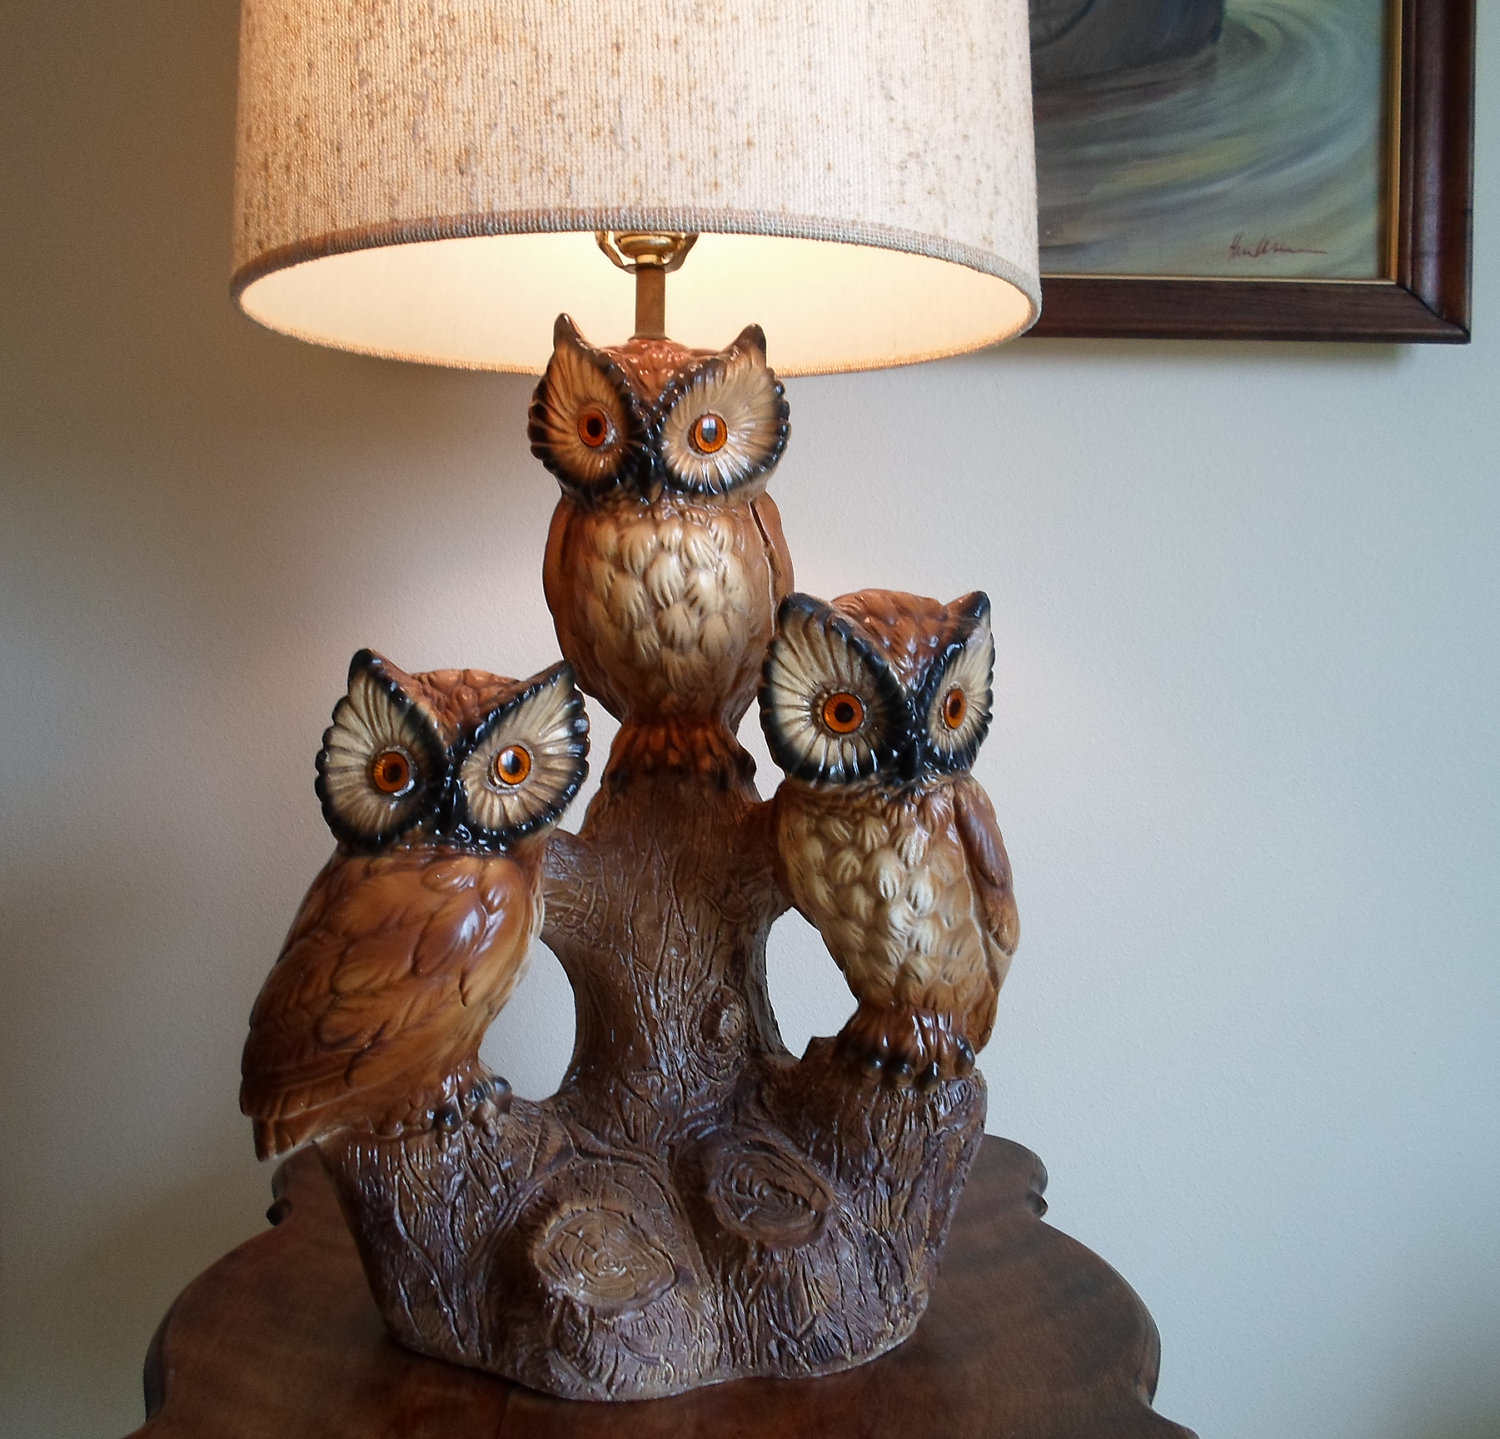 Vintage owl lamps - Make Your Bedroom Look Romantic With Antique Owl Lamp Make Your Bedroom Look Romantic With